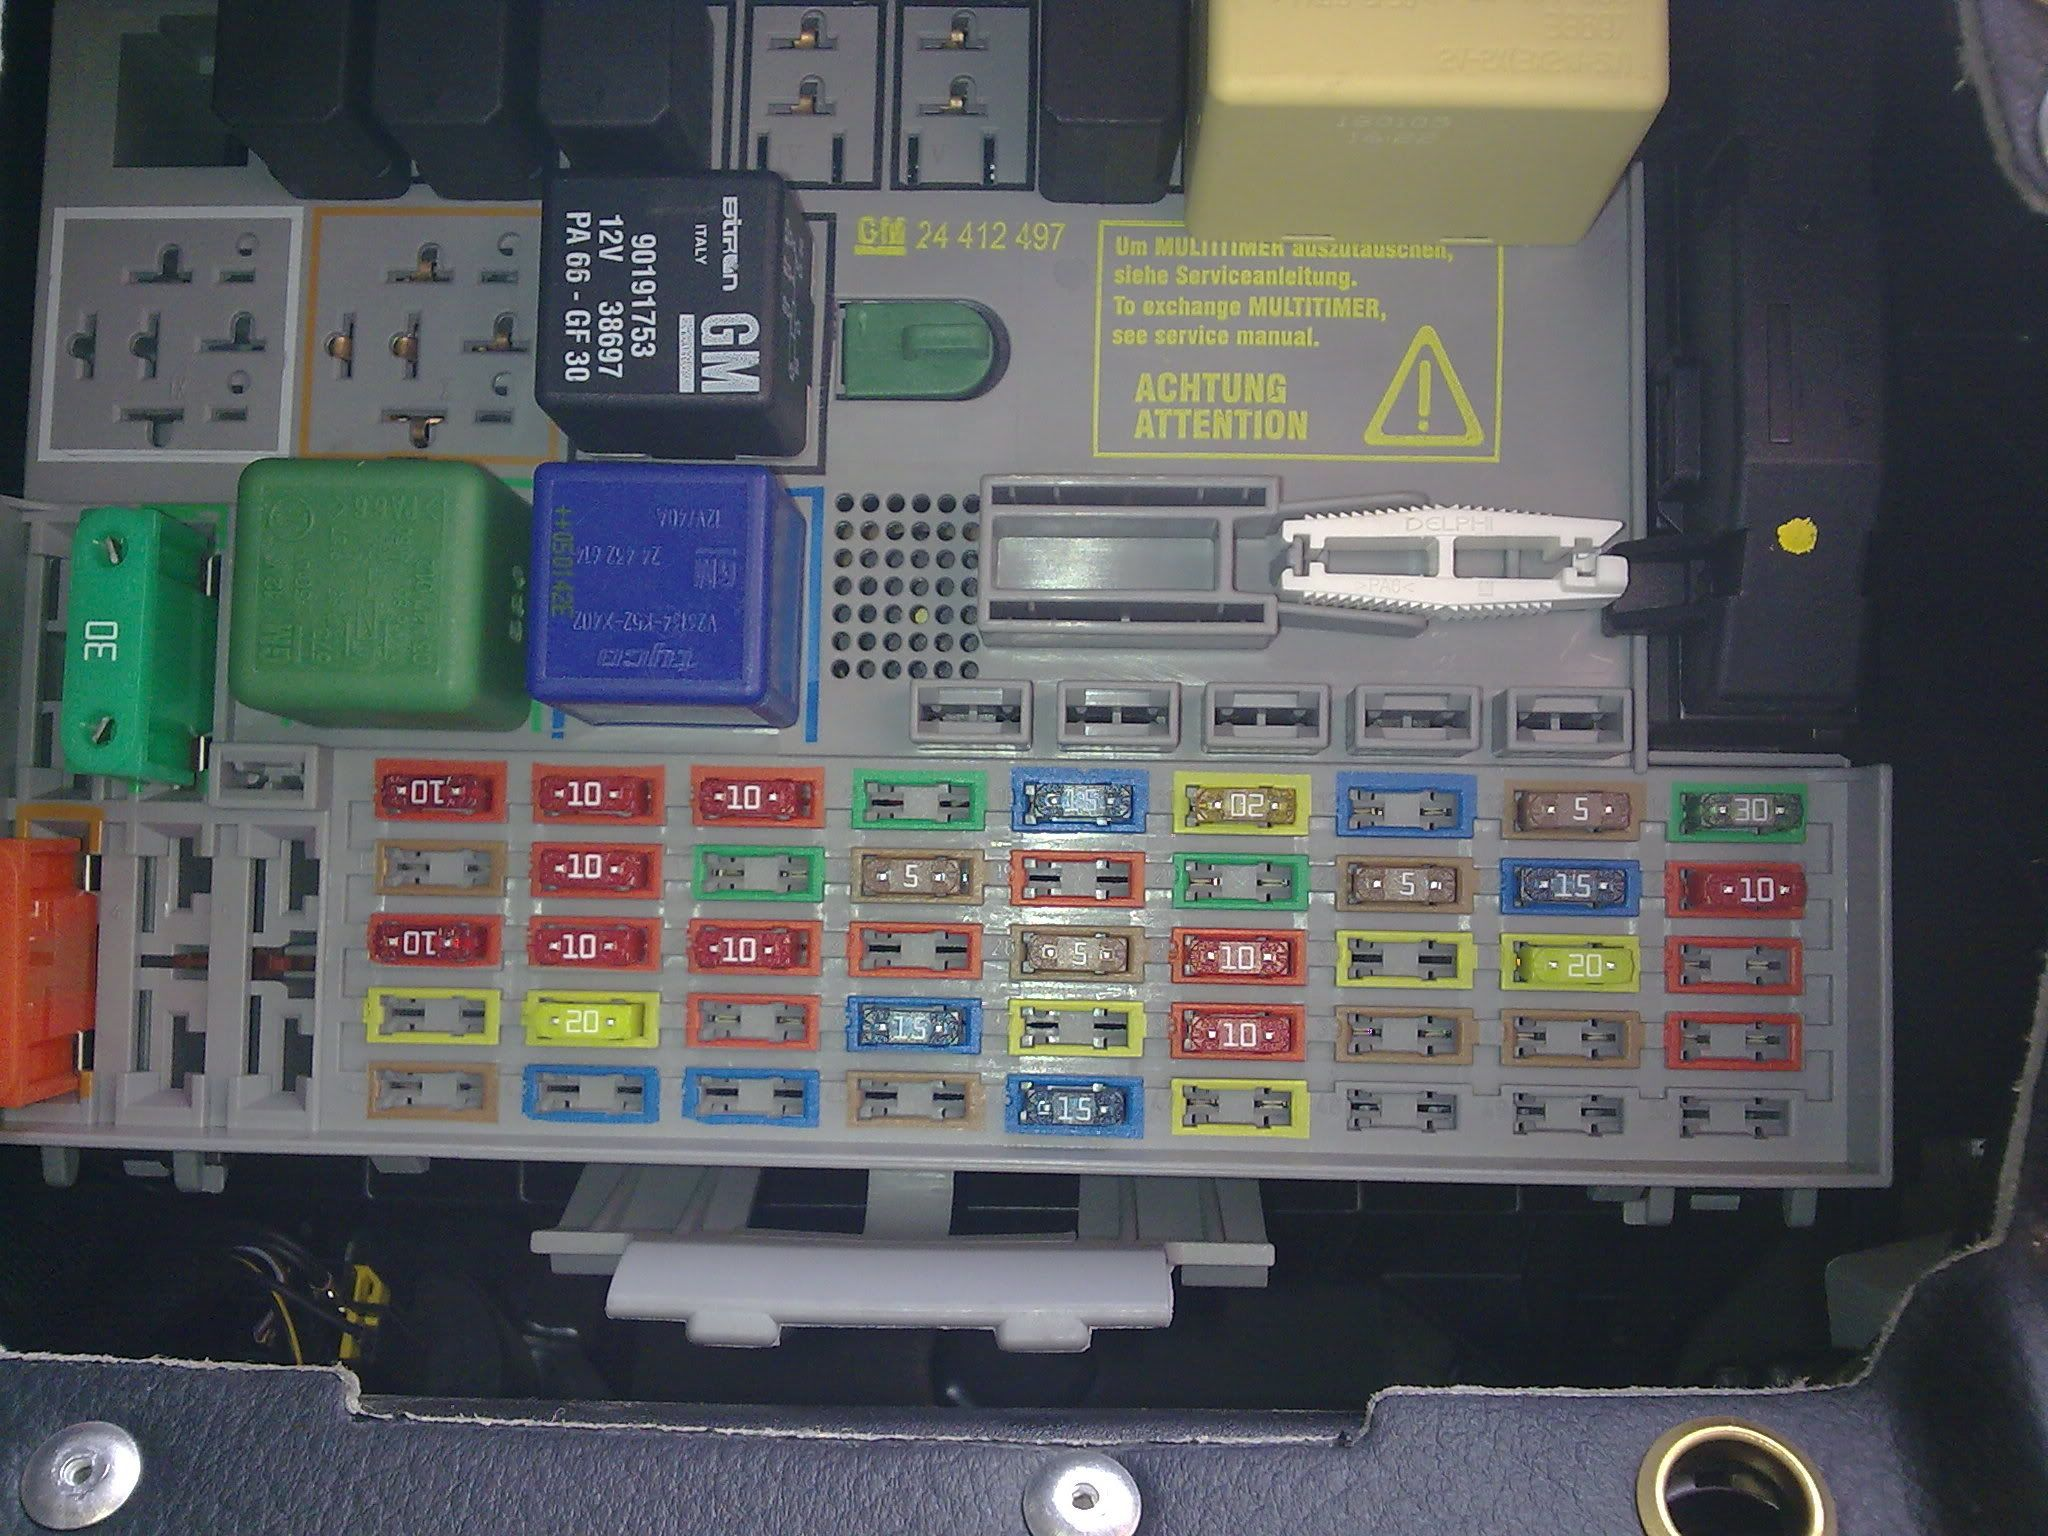 ... astra G fuse box diagram by Alex Mazilu.  http://img.photobucket.com/albums/v333/leesturbo/